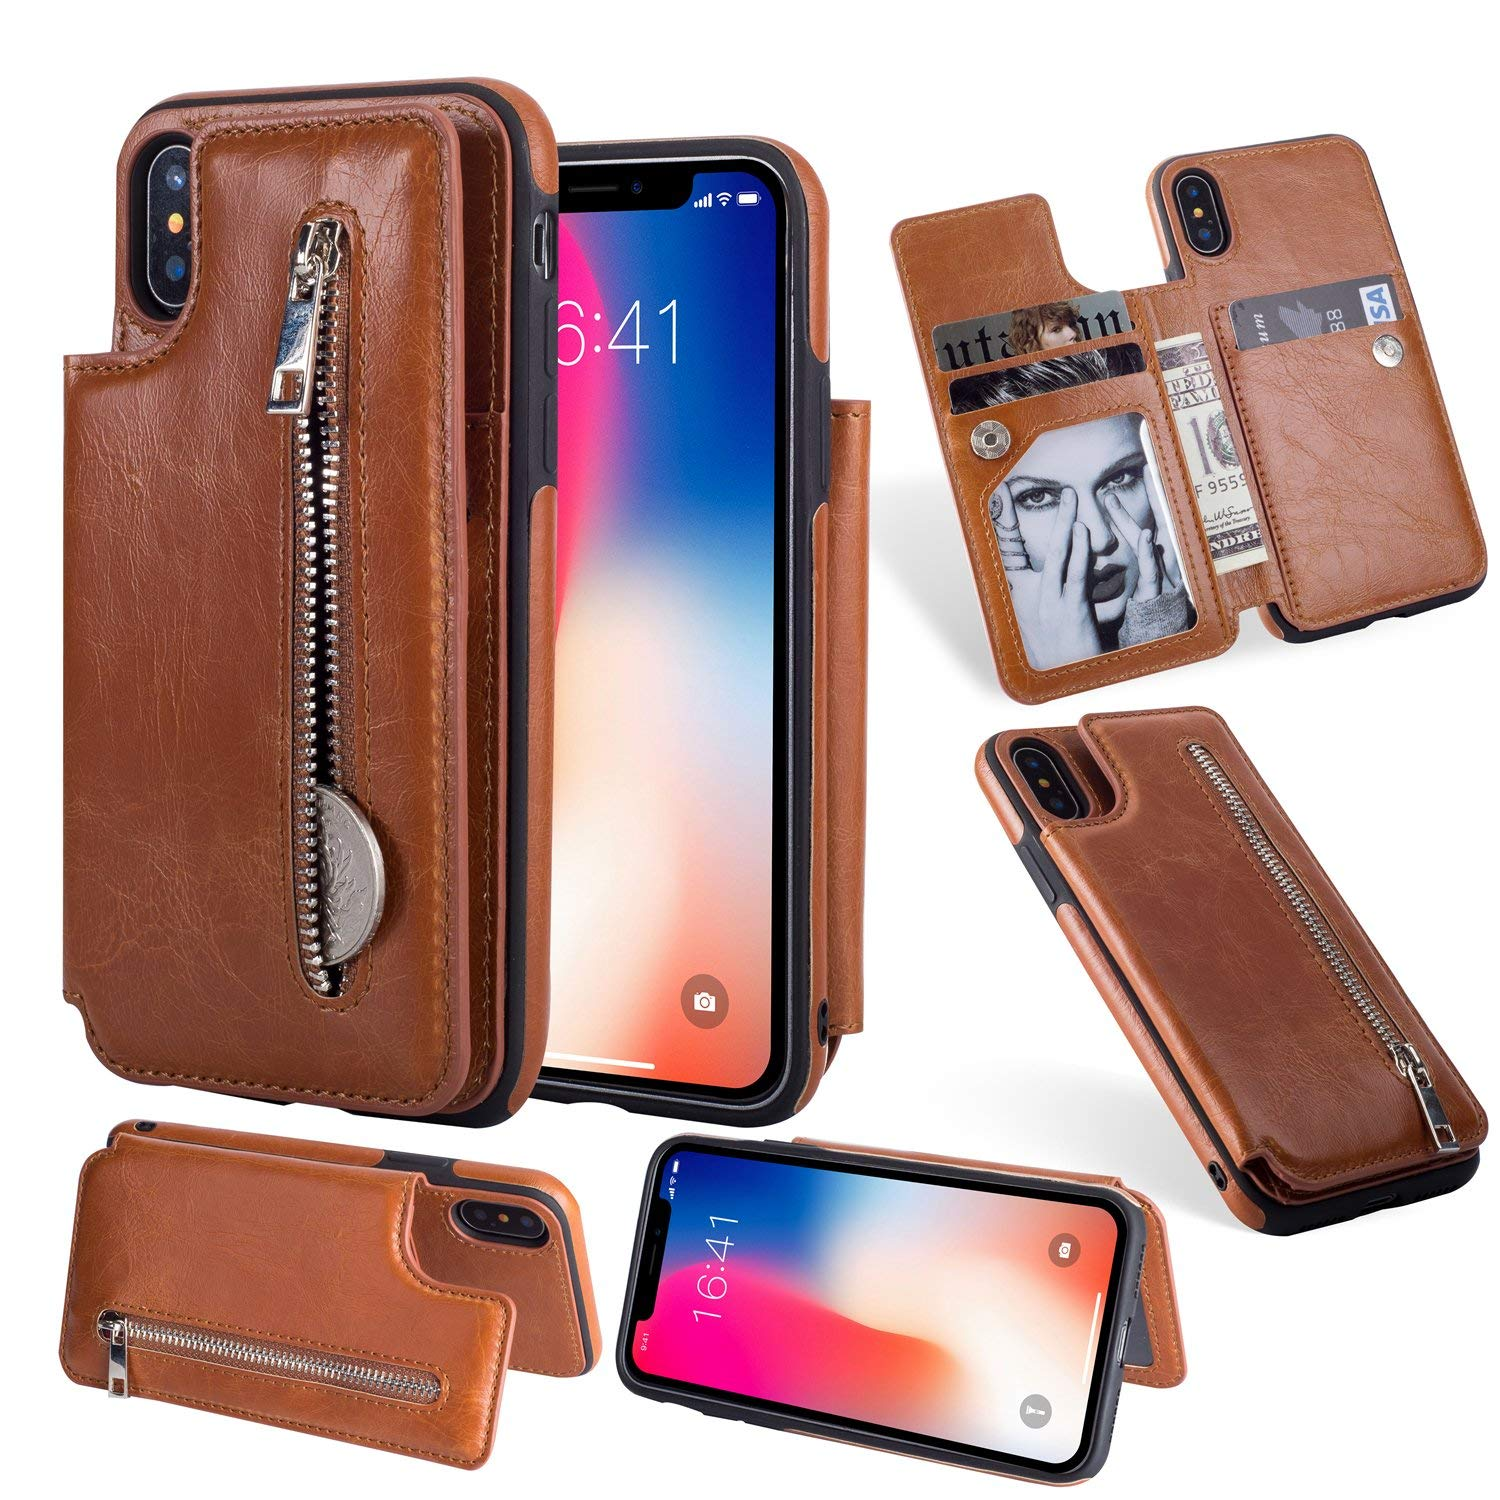 Jennyfly iPhone Xs Mas Phone Case, Fashion Zipper Magnetic Closure Wallet Design Premium Durable Leather Zipper Protective Cover with Card Slots & Money Pocket for iPhone Xs Mas 6.5 Inch - Brown by Jennyfly